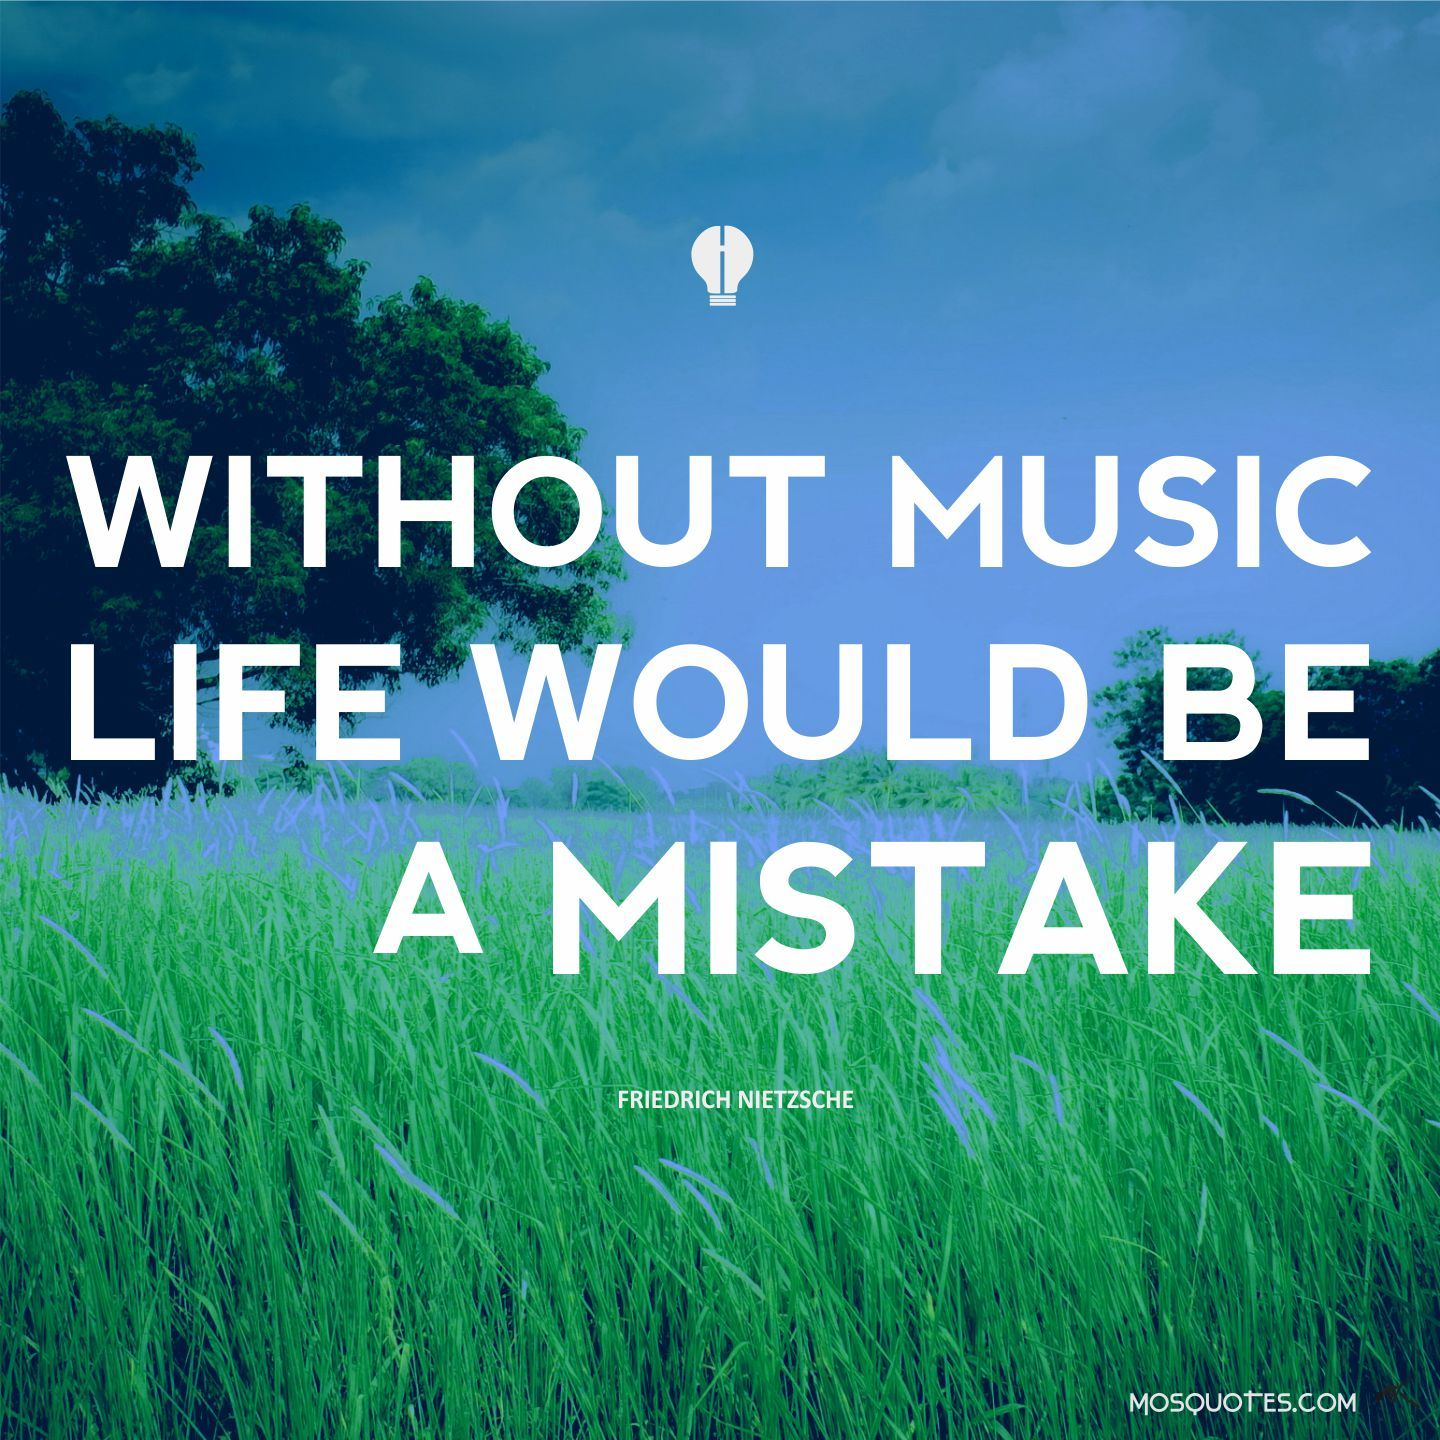 Inspirational Quotes About Music And Life Inspirational Quotes Without Music Life Would Be A Mistake